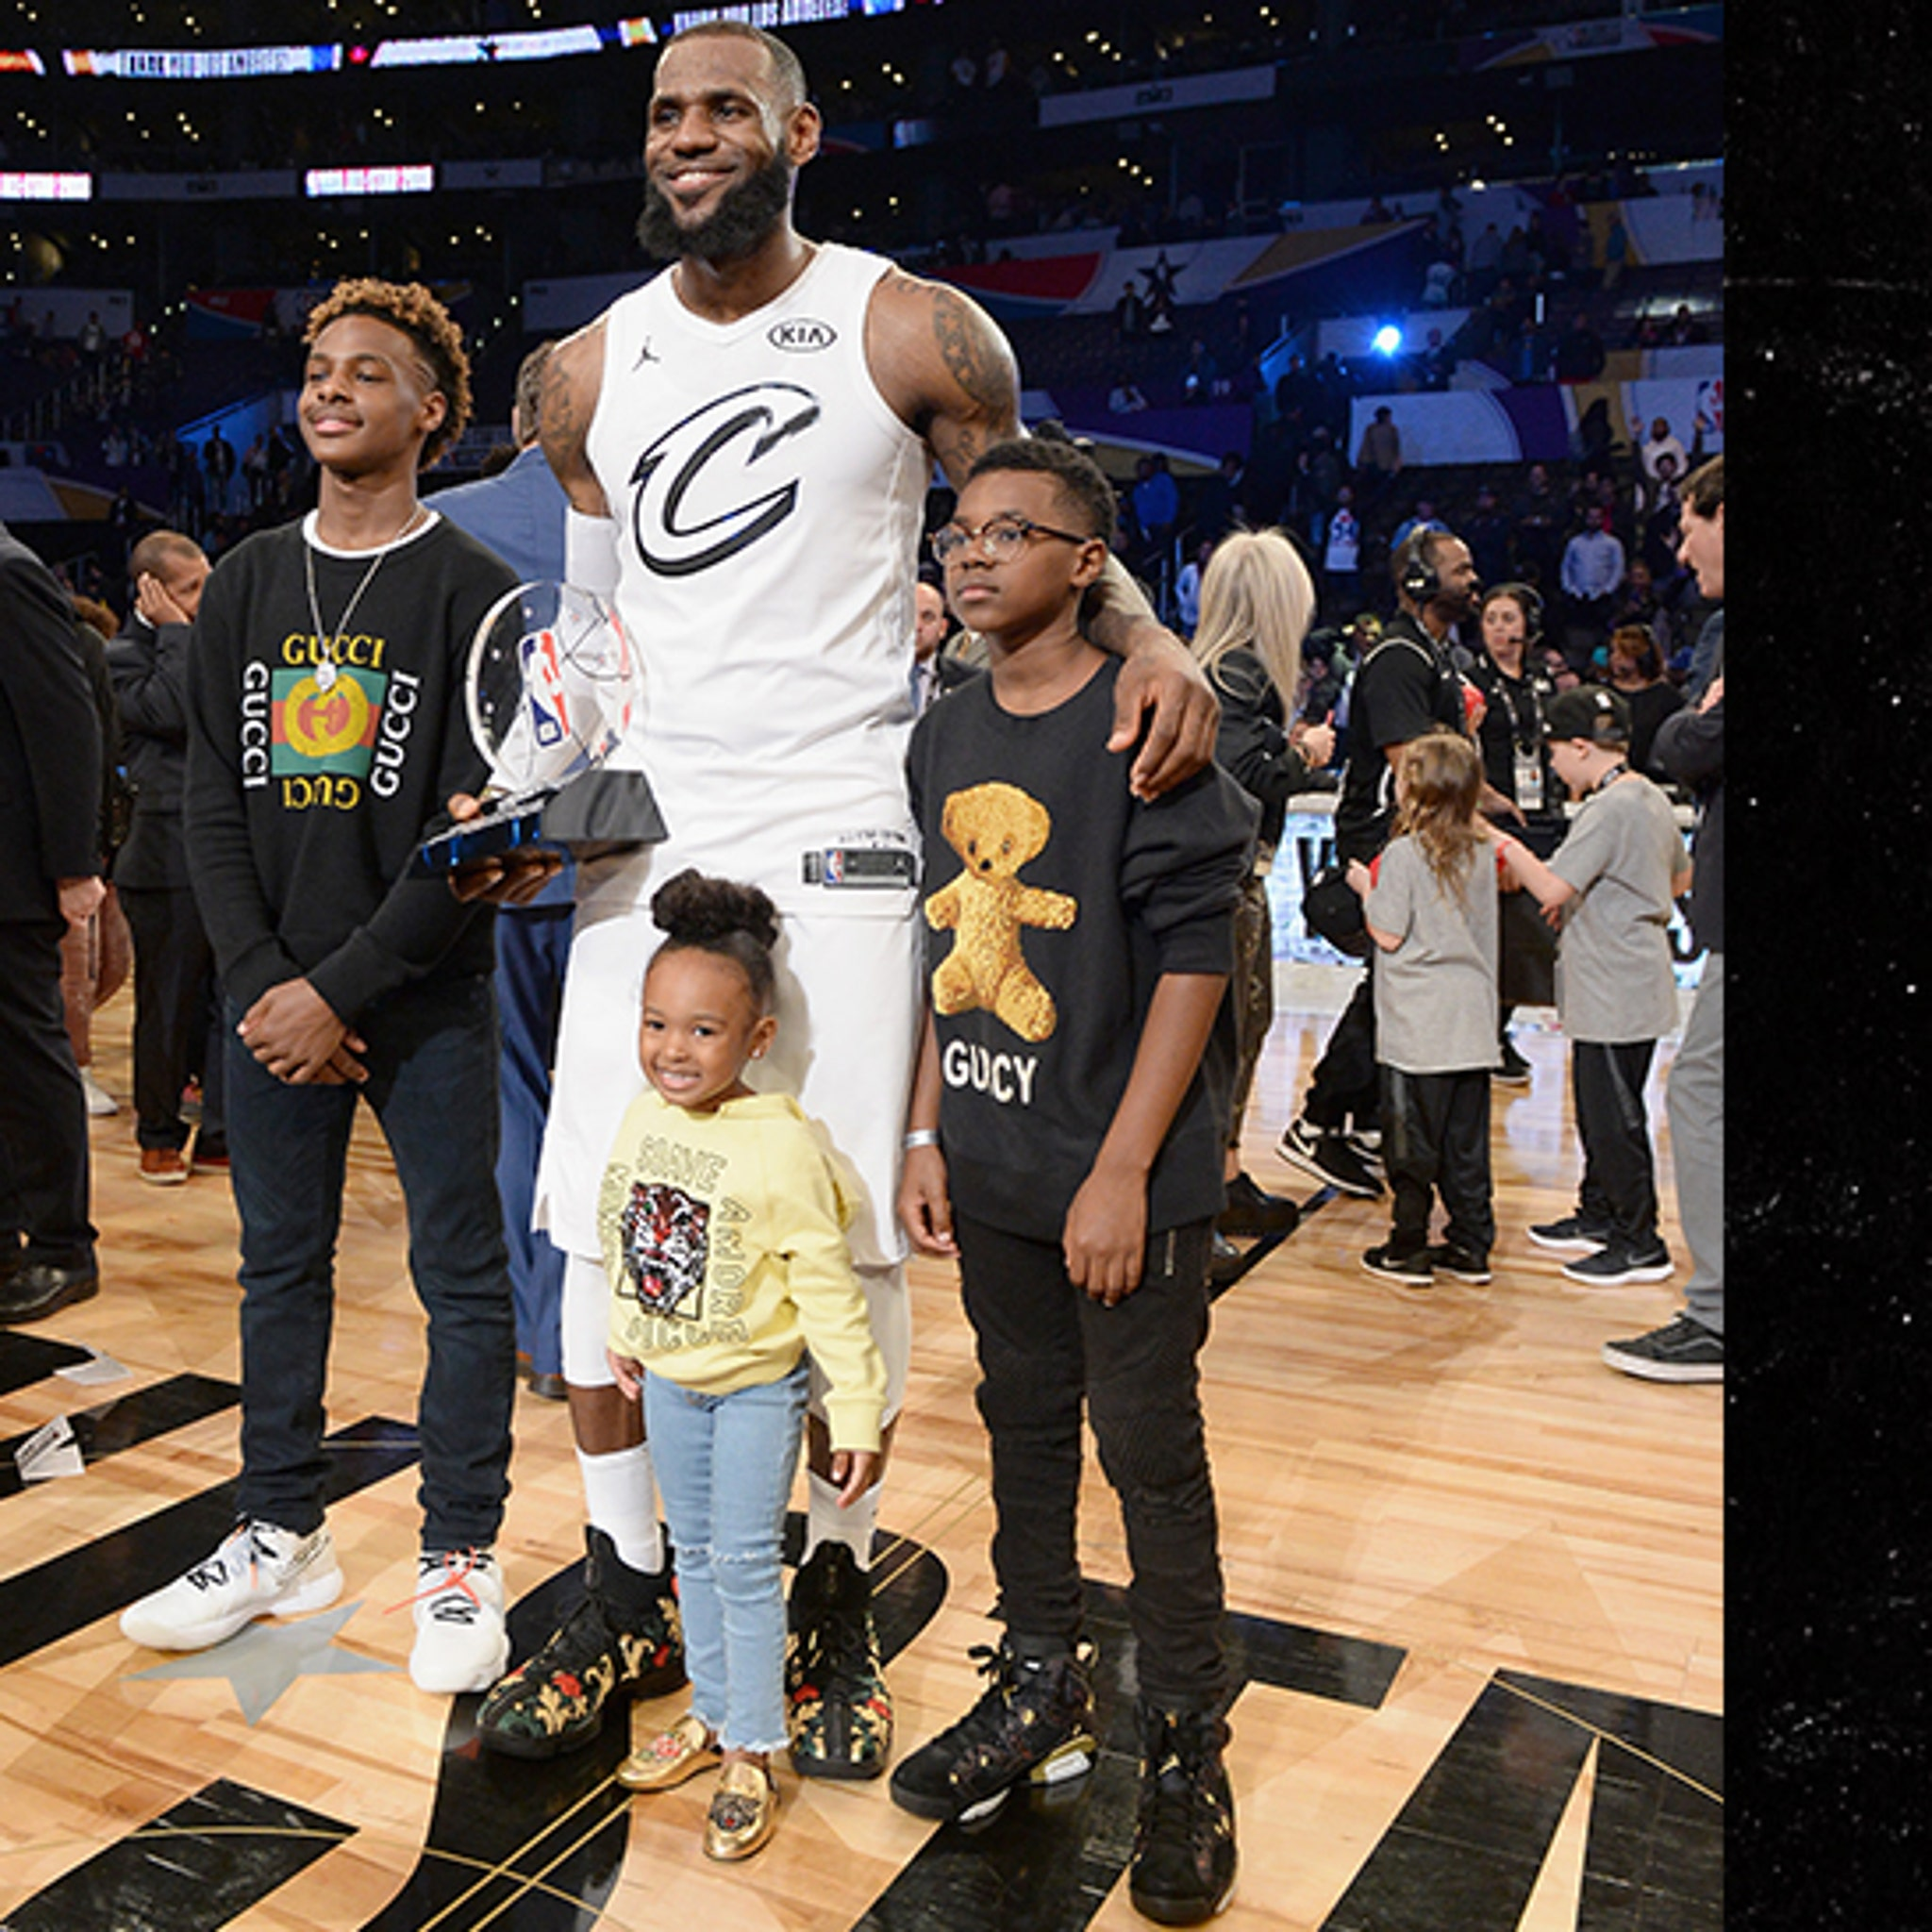 new styles 8e8df bd30f LeBron James' Kids Fitted in Over $3k of Gucci Merch at All ...